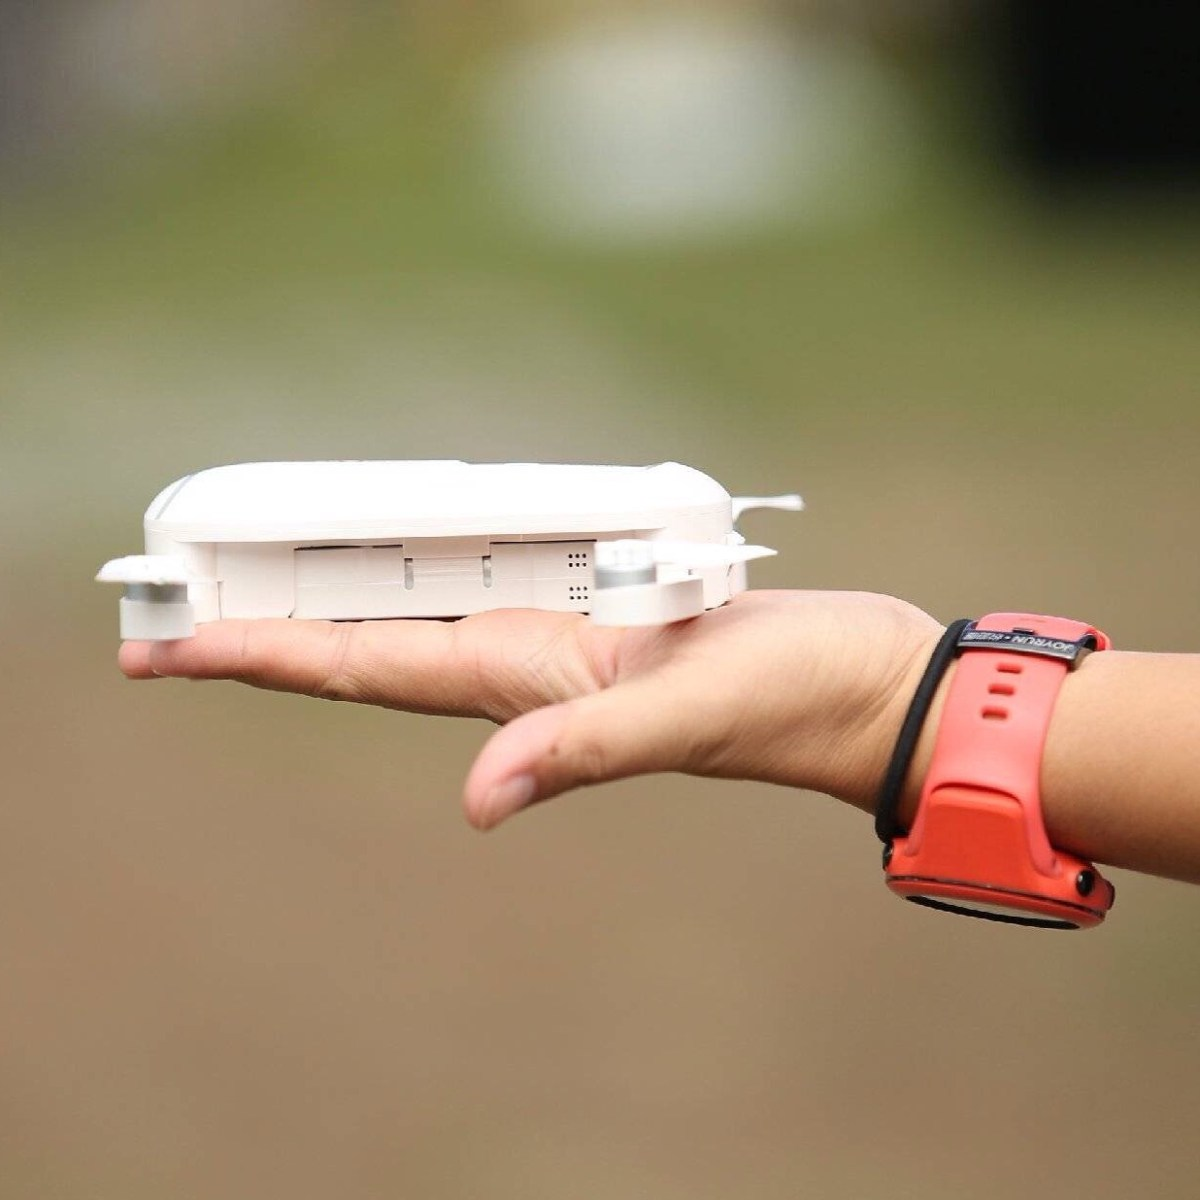 Zerotech Dobby Pocket Drone - First Look